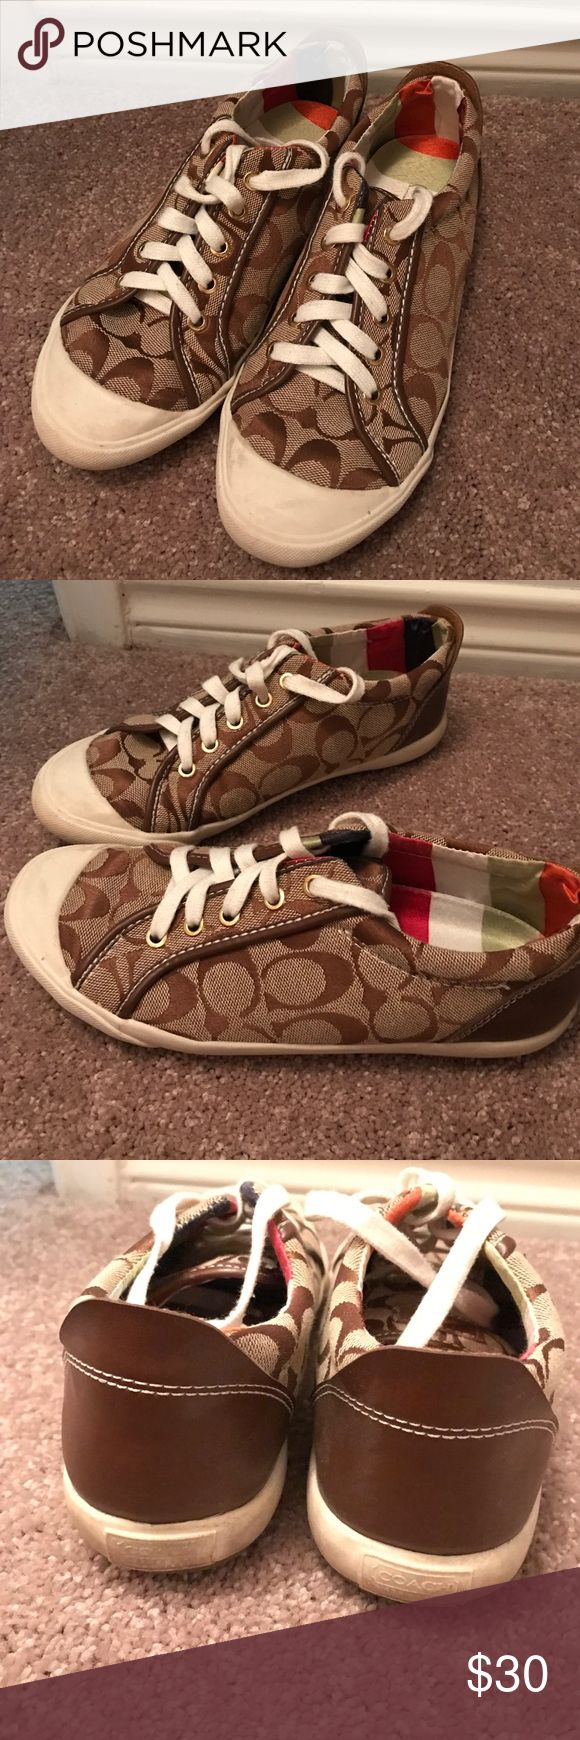 Coach tennis shoes Adorable Coach tennis shoes in the tan print. Very comfortable! Some wear can be seen on the rubber part of the shoe (pictured). Otherwise in great condition! Perfect for spring/summer! Coach Shoes Sneakers